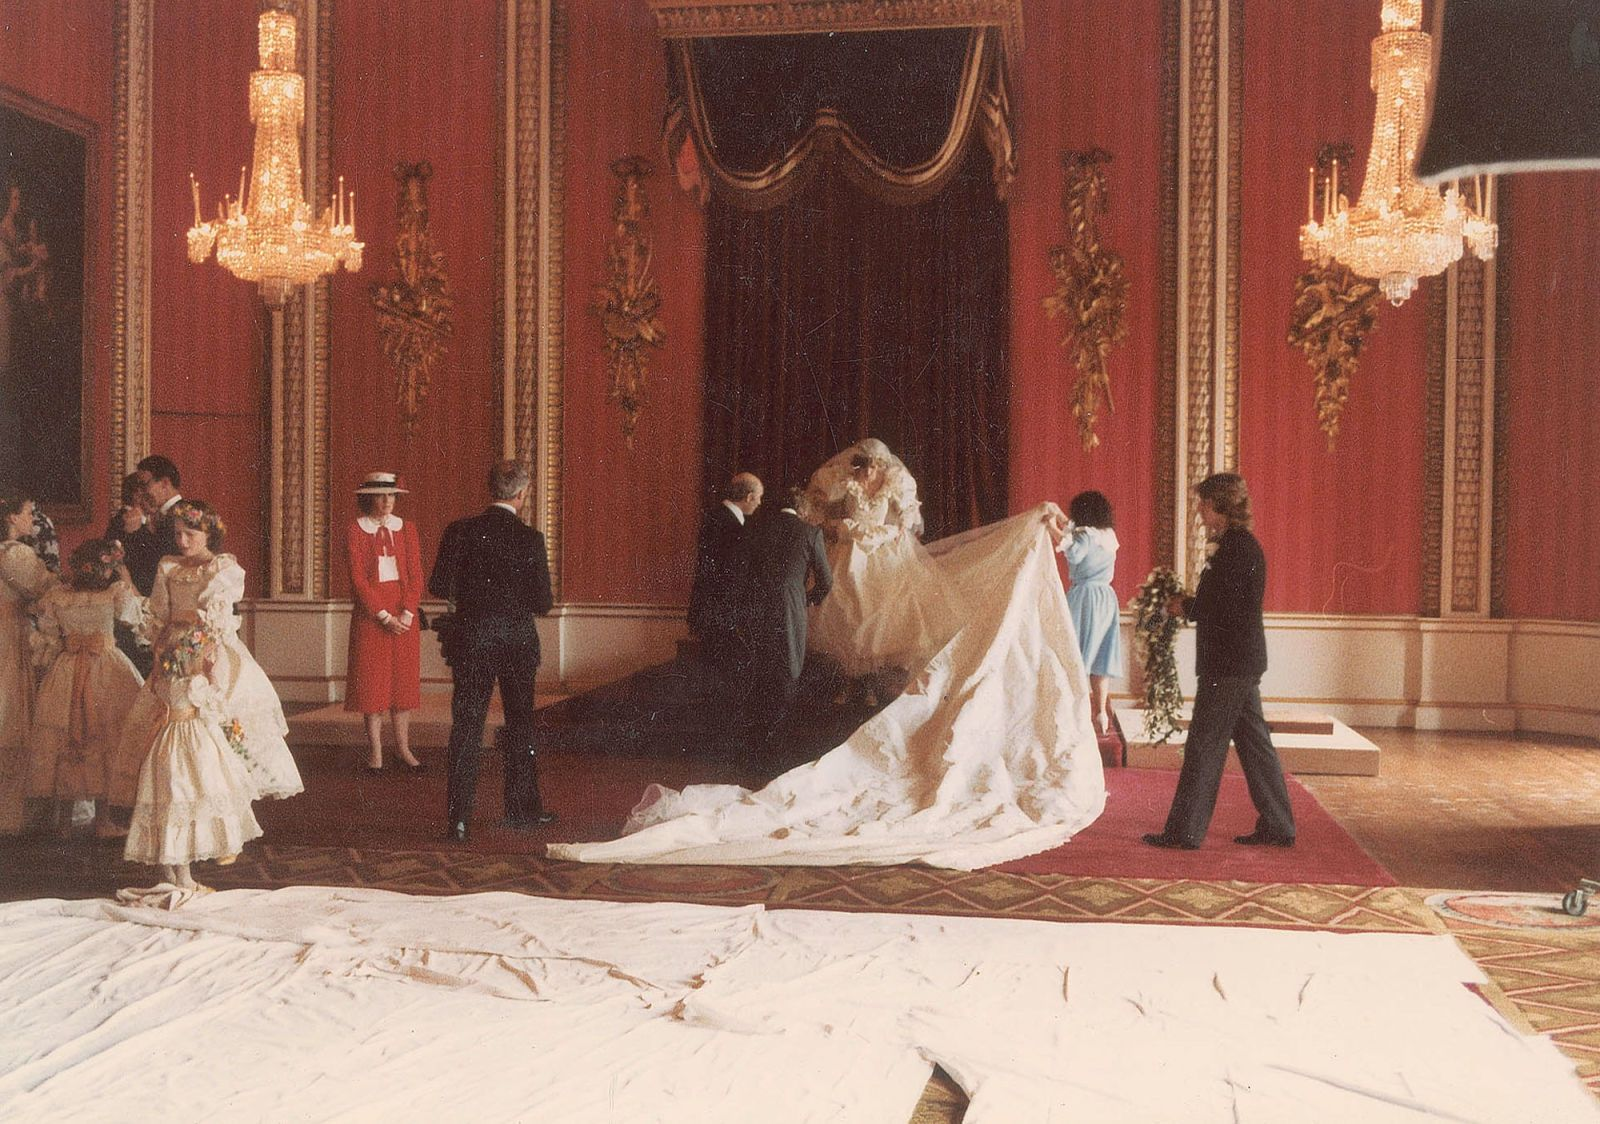 Never-Before-Seen Photos From Princess Diana's Wedding Have Been Released  - Veranda.com